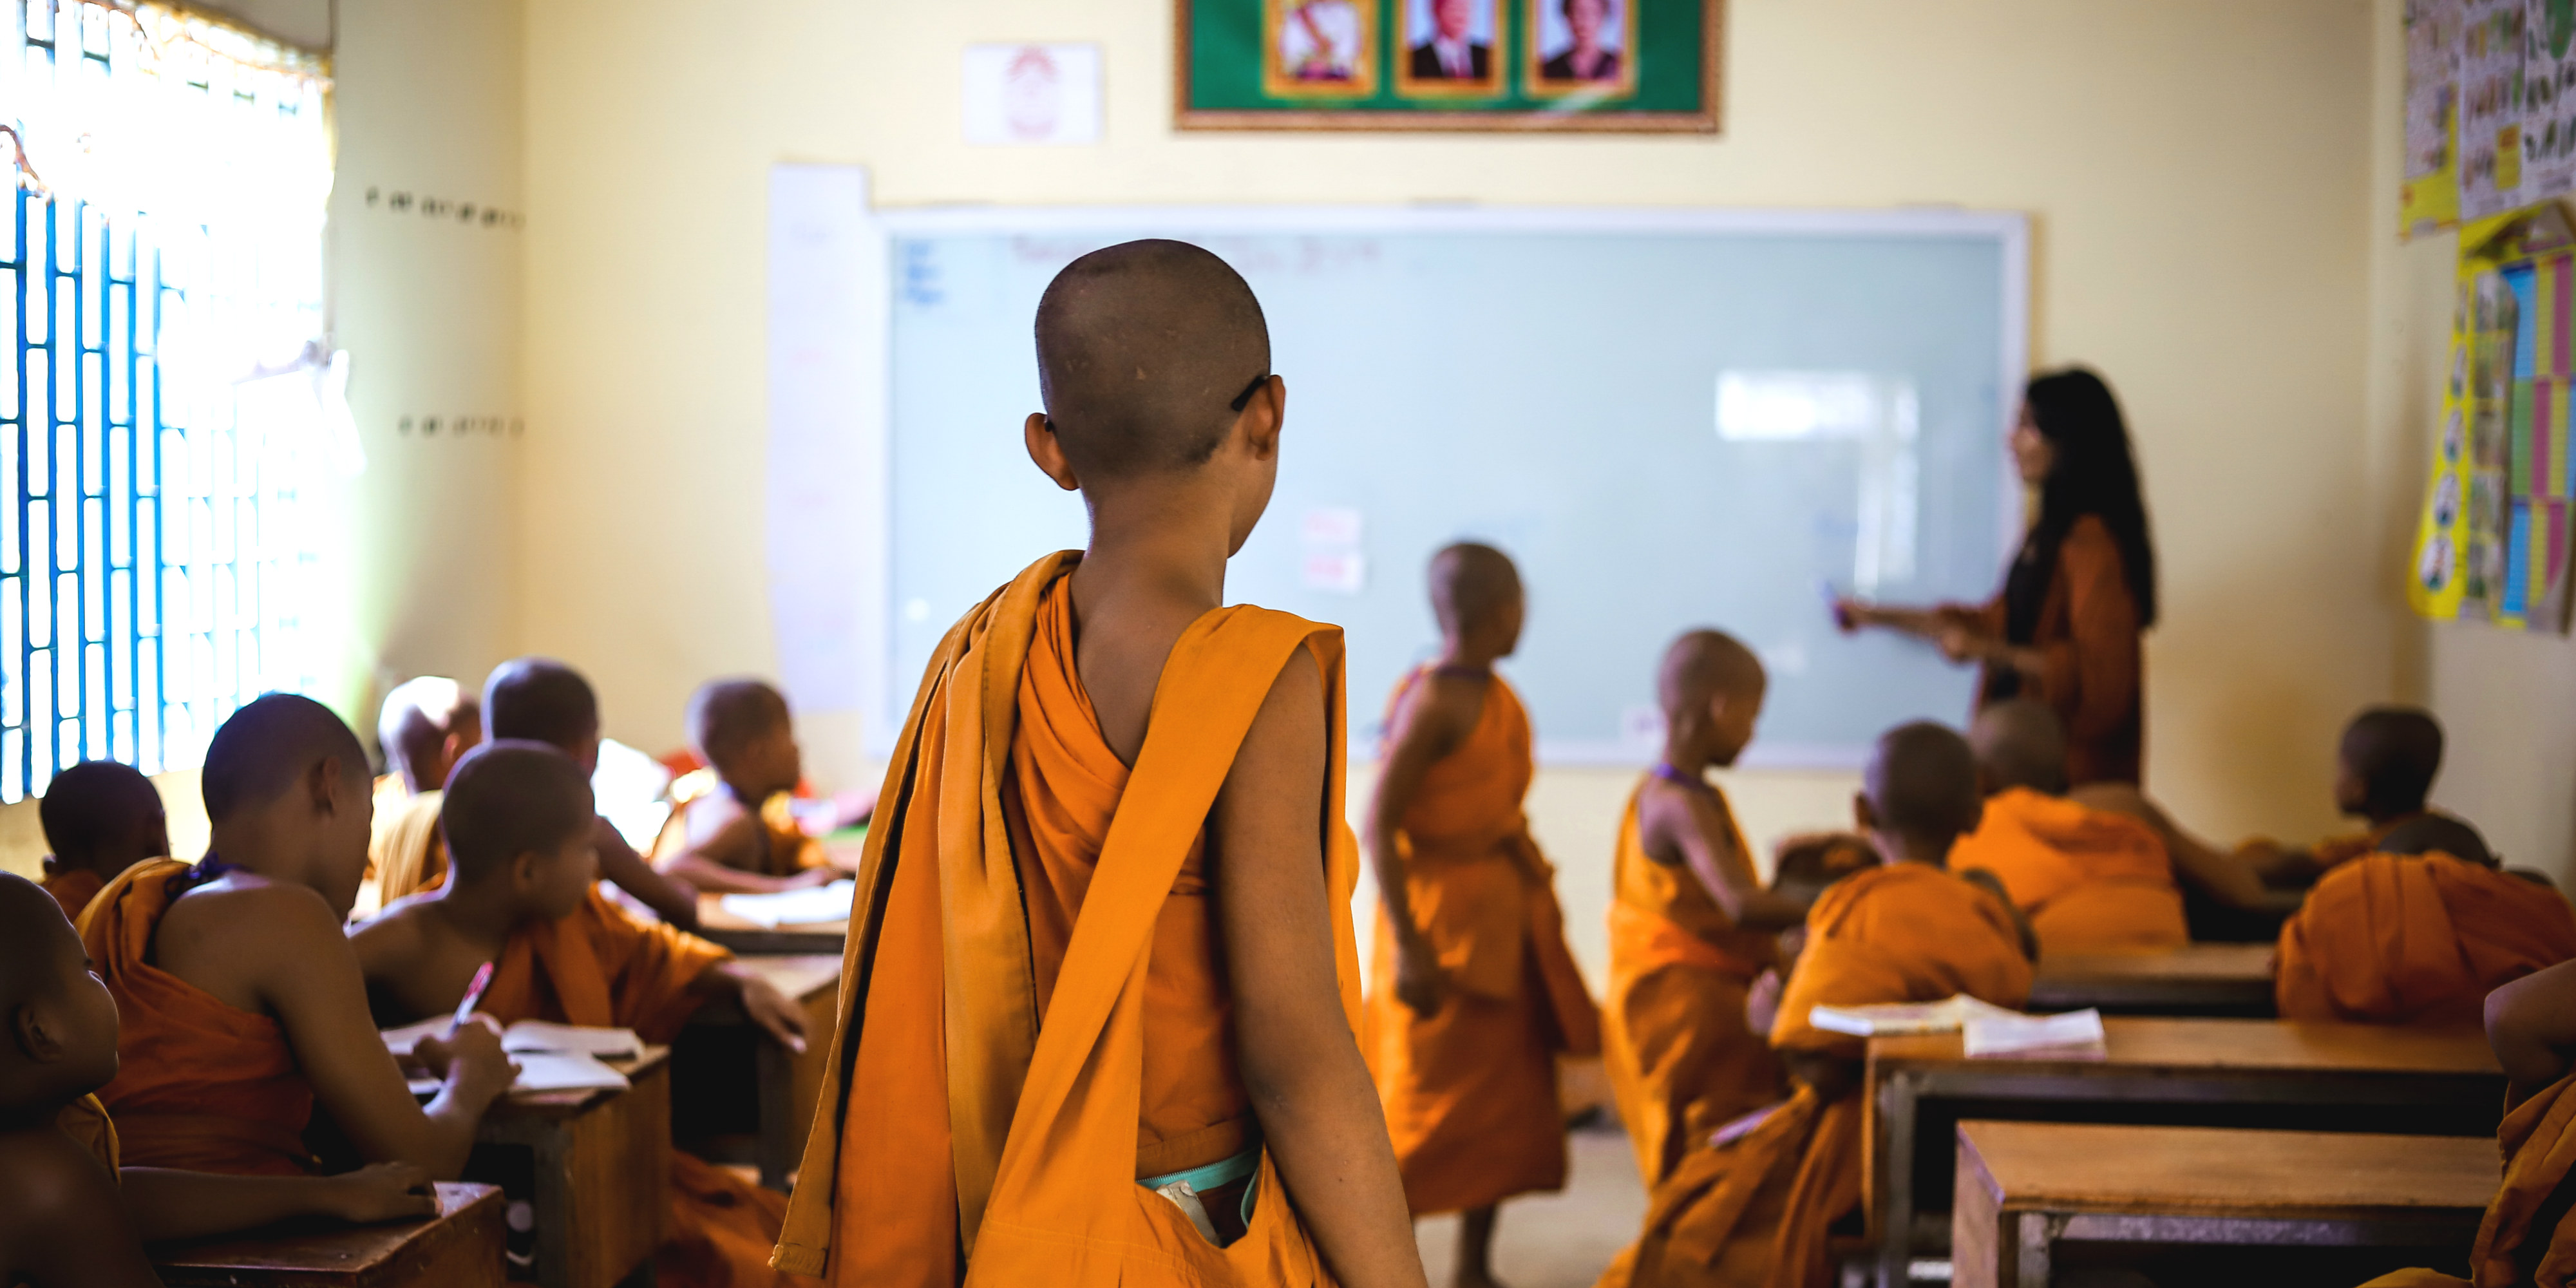 A novice monk enters an English lesson in Cambodia. This program, which is one of the best volunteer abroad programs for adults, seeks to increase educational capacity in Kampong Cham.